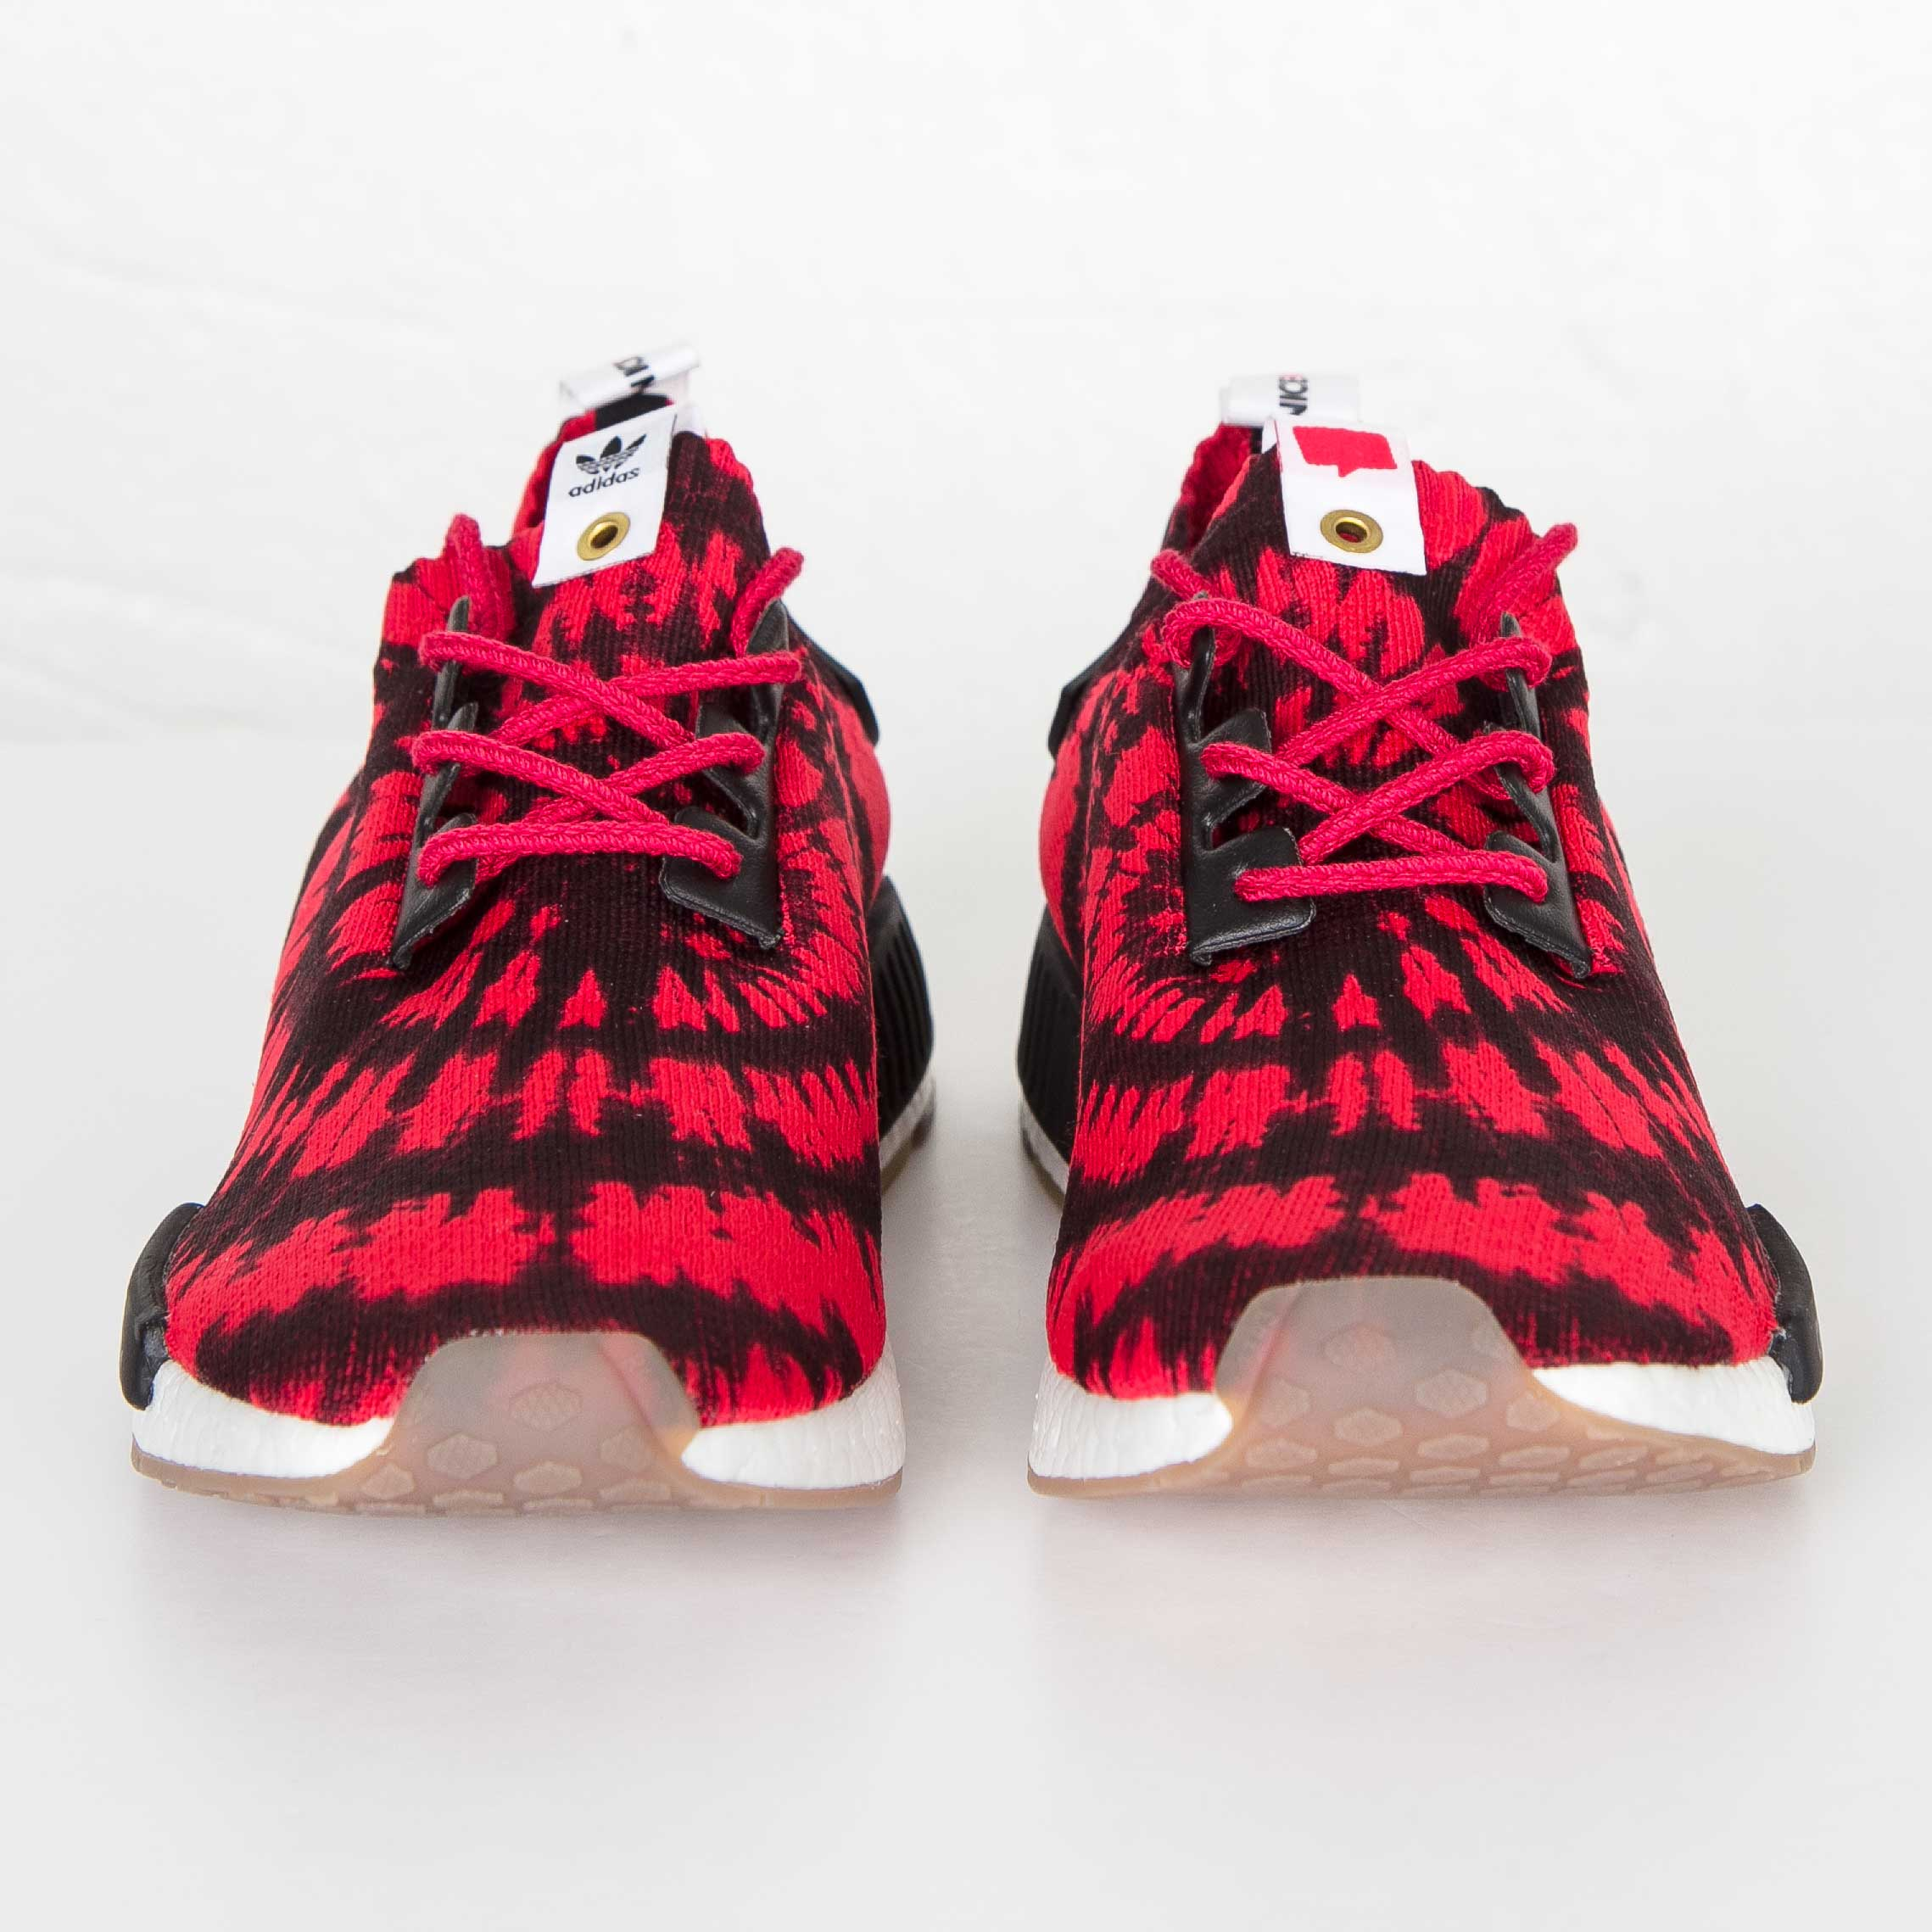 6e2cb32e94e0f ... aq4791 58bf3 62083 where to buy nice kicks x adidas nmd runner  primeknit great site for all sneakers half ...